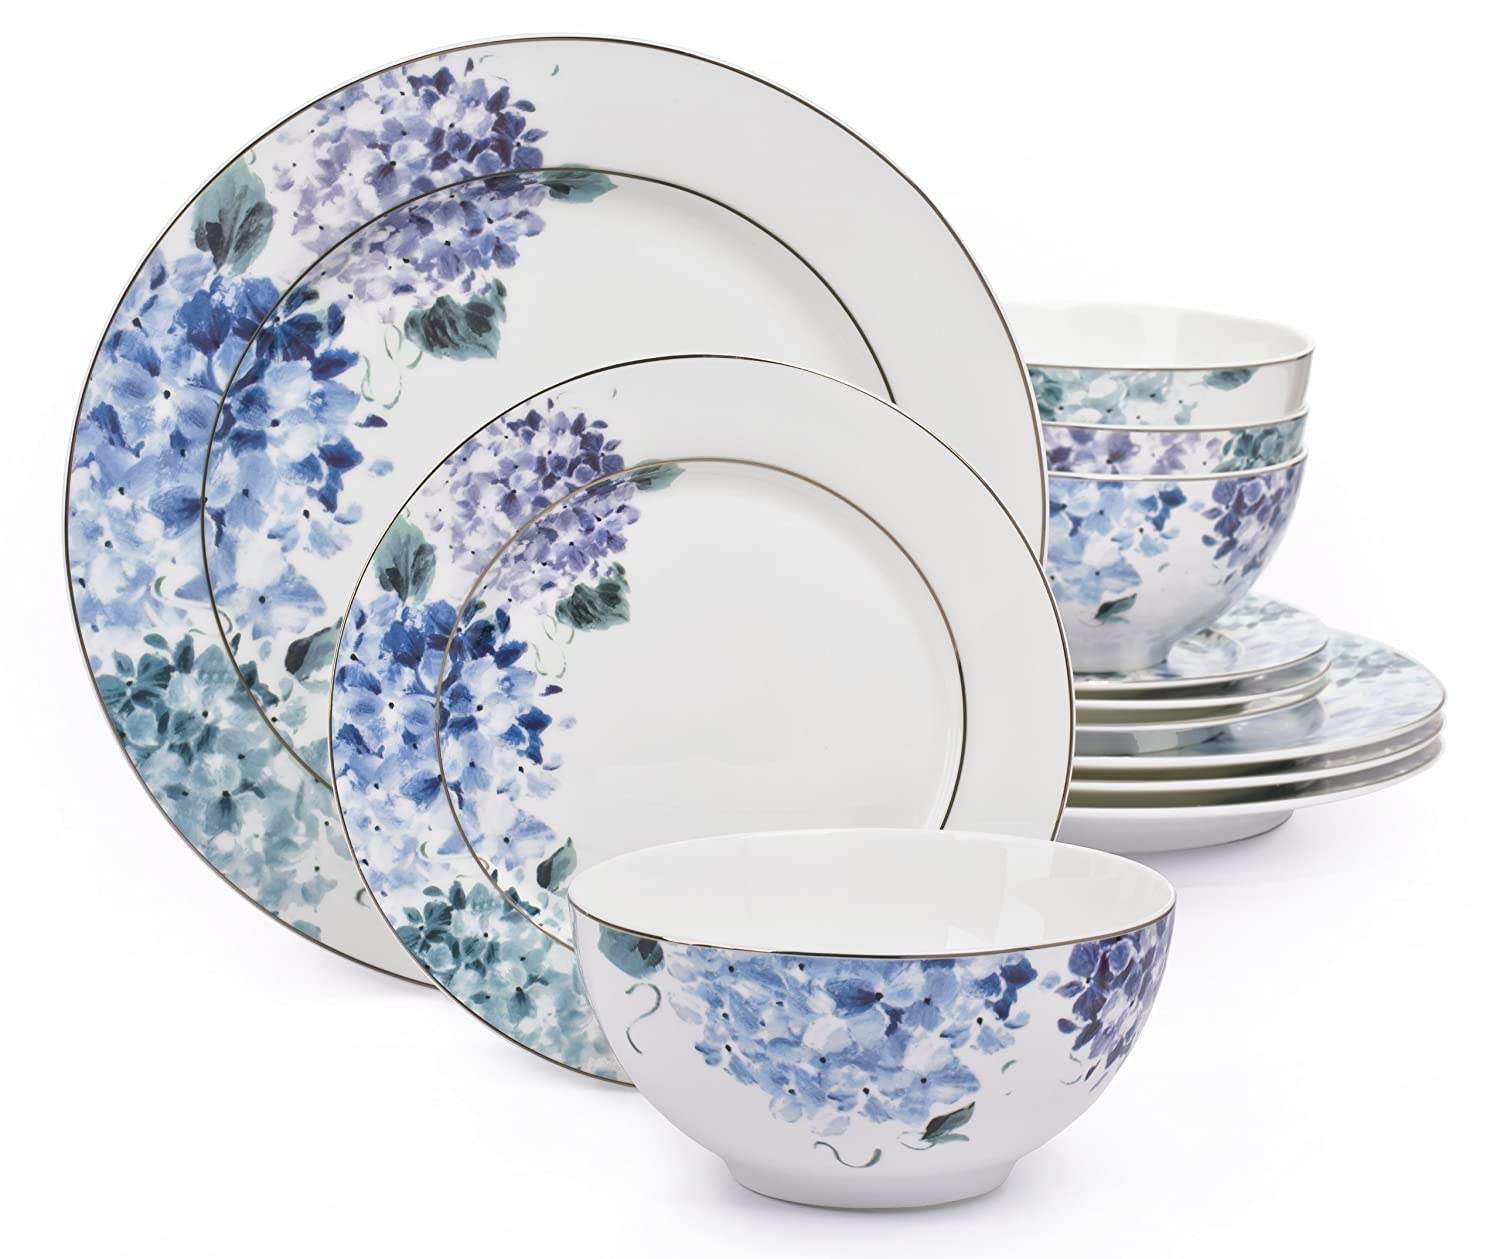 12 Piece Hydrangea Blue Bone China Dinner Set12 Piece Waterside Fine Bone China Dinner Set  Amazon co uk  . Fine Bone China Dinnerware Sets Uk. Home Design Ideas